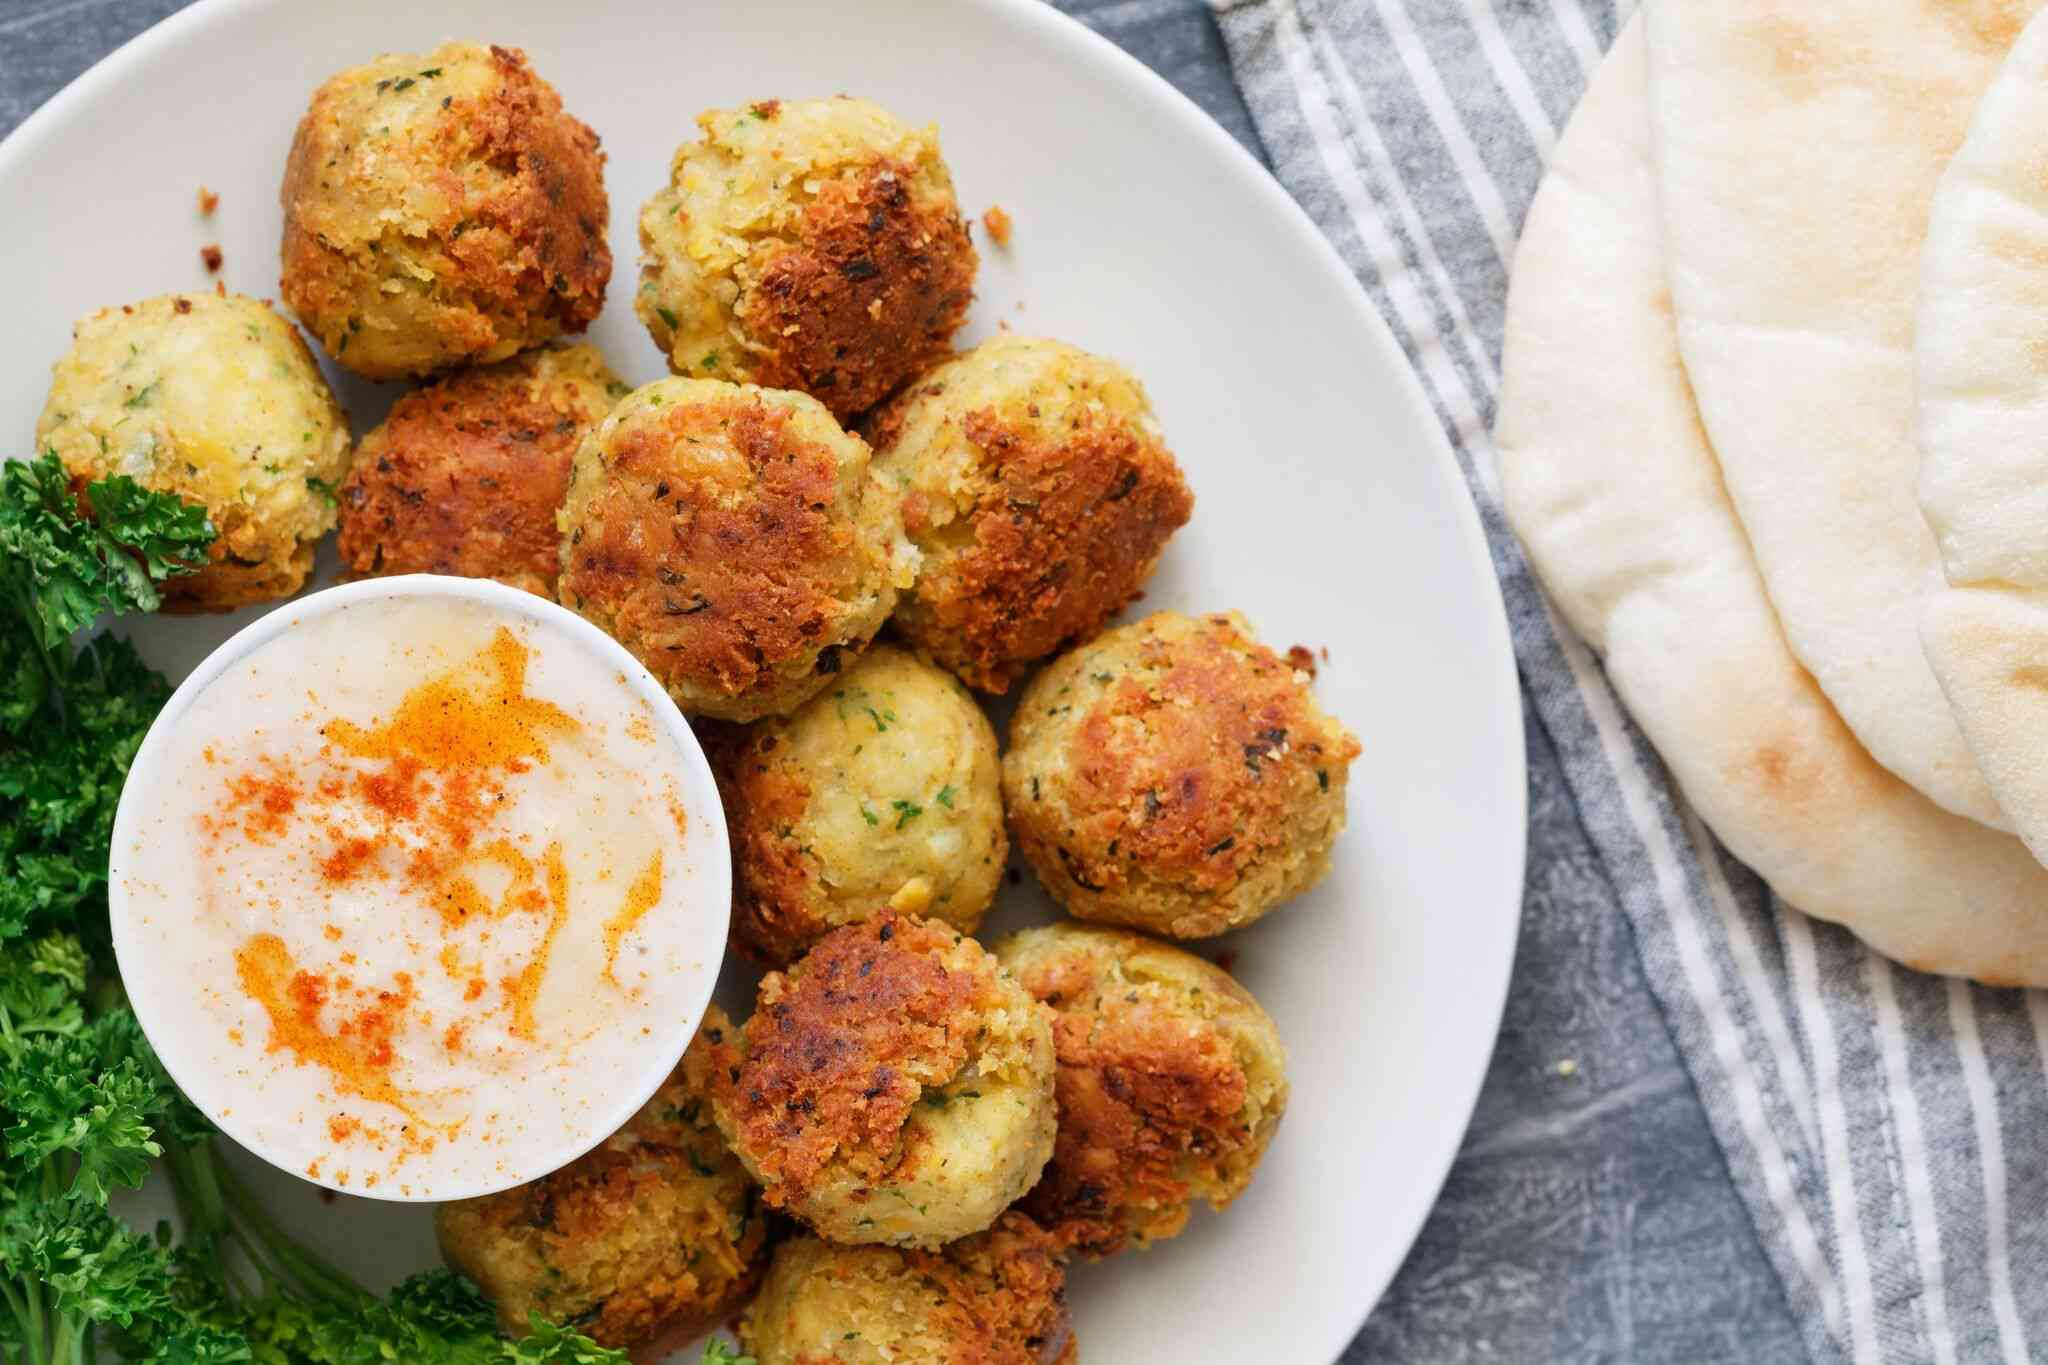 Top Most Popular Middle Eastern Foods